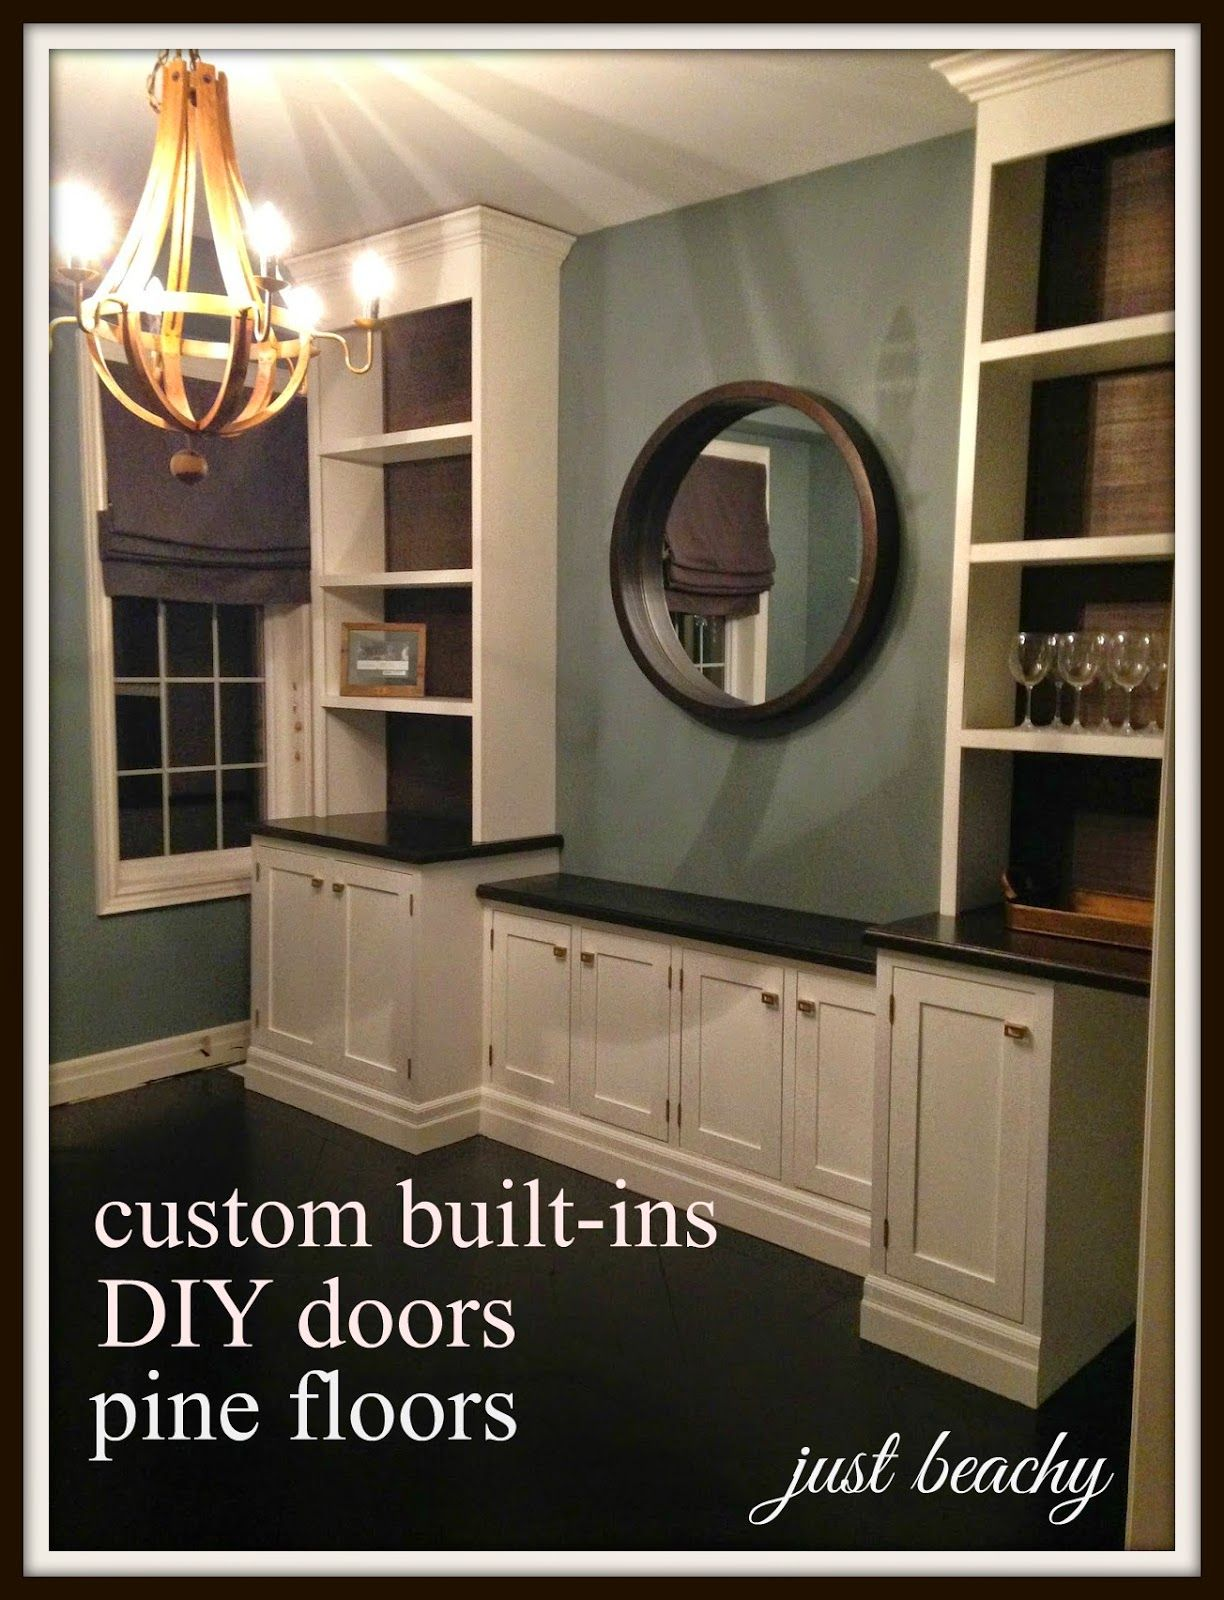 White Wood My Dining Room Makeover From Start To Finishbuilt Ins Floors DIY Doors